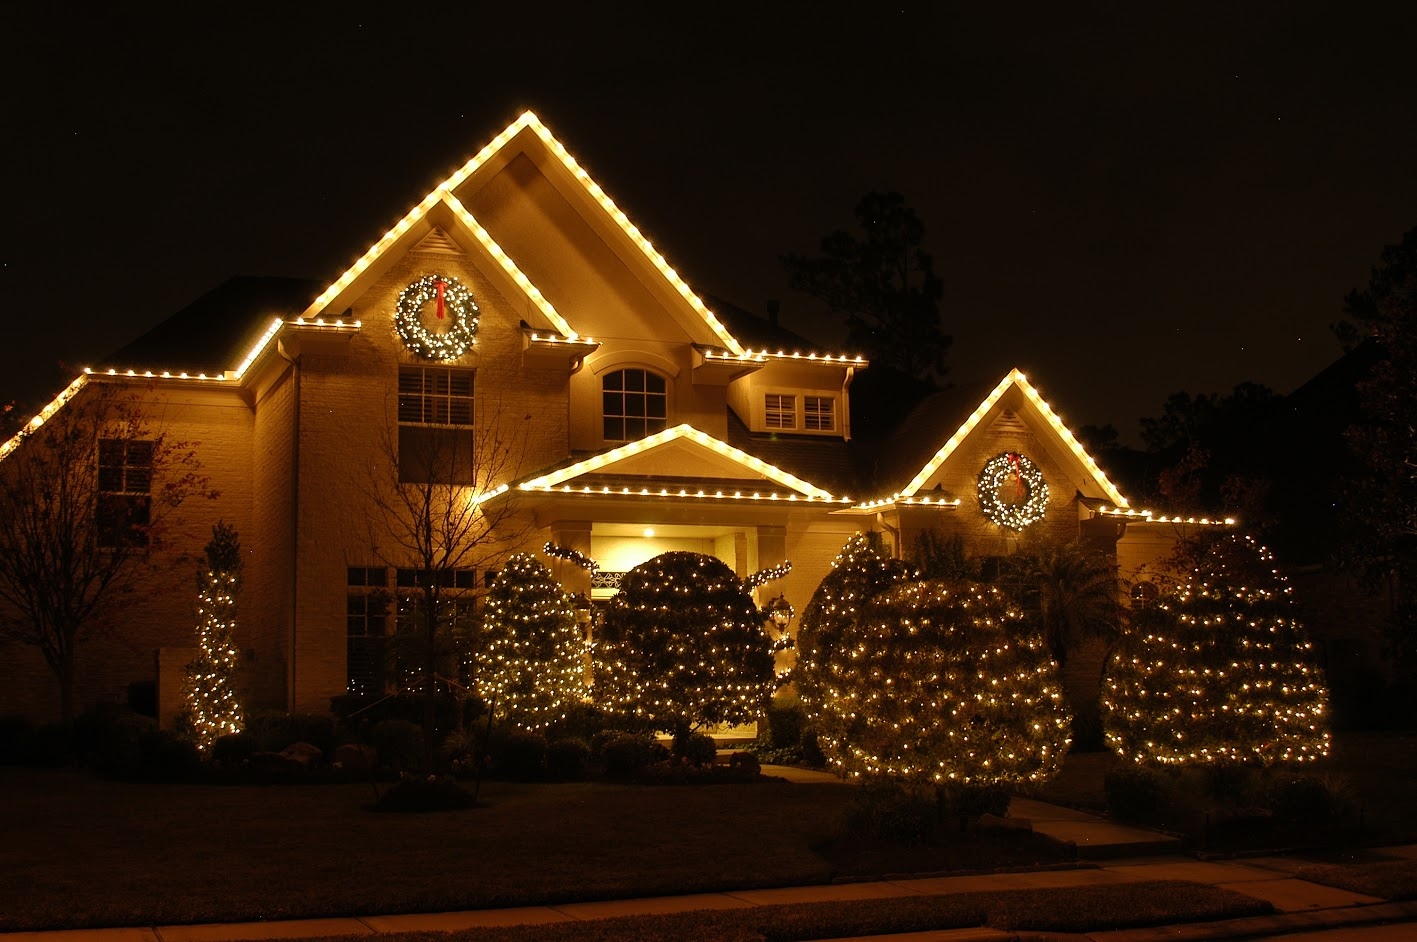 residential christmas lighting services in kansas city mo - Christmas Lights In Kansas City